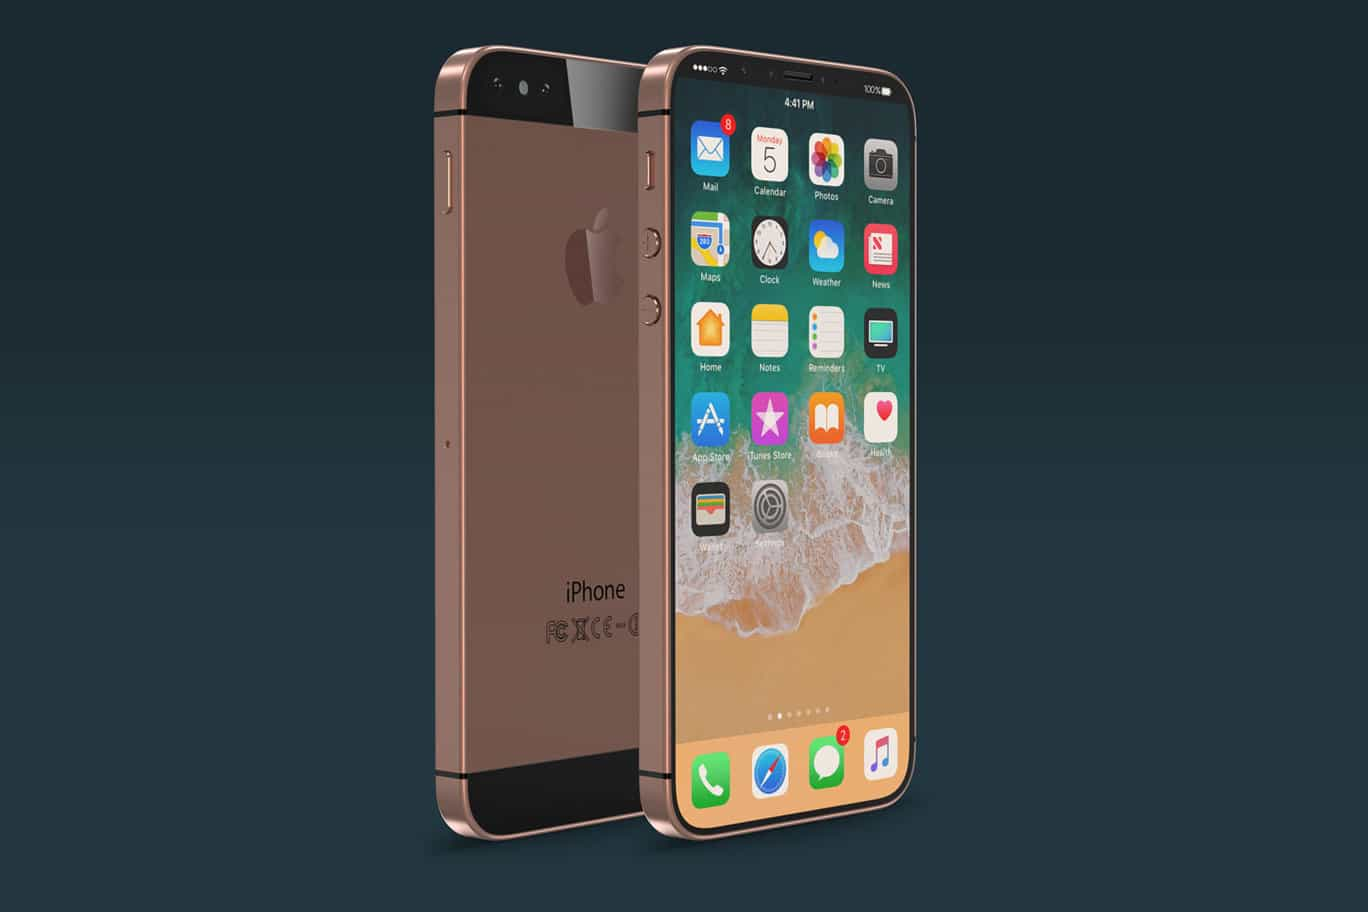 Iphone X Features Iphone Se Plus Concept Packs Best Iphone X Features Into